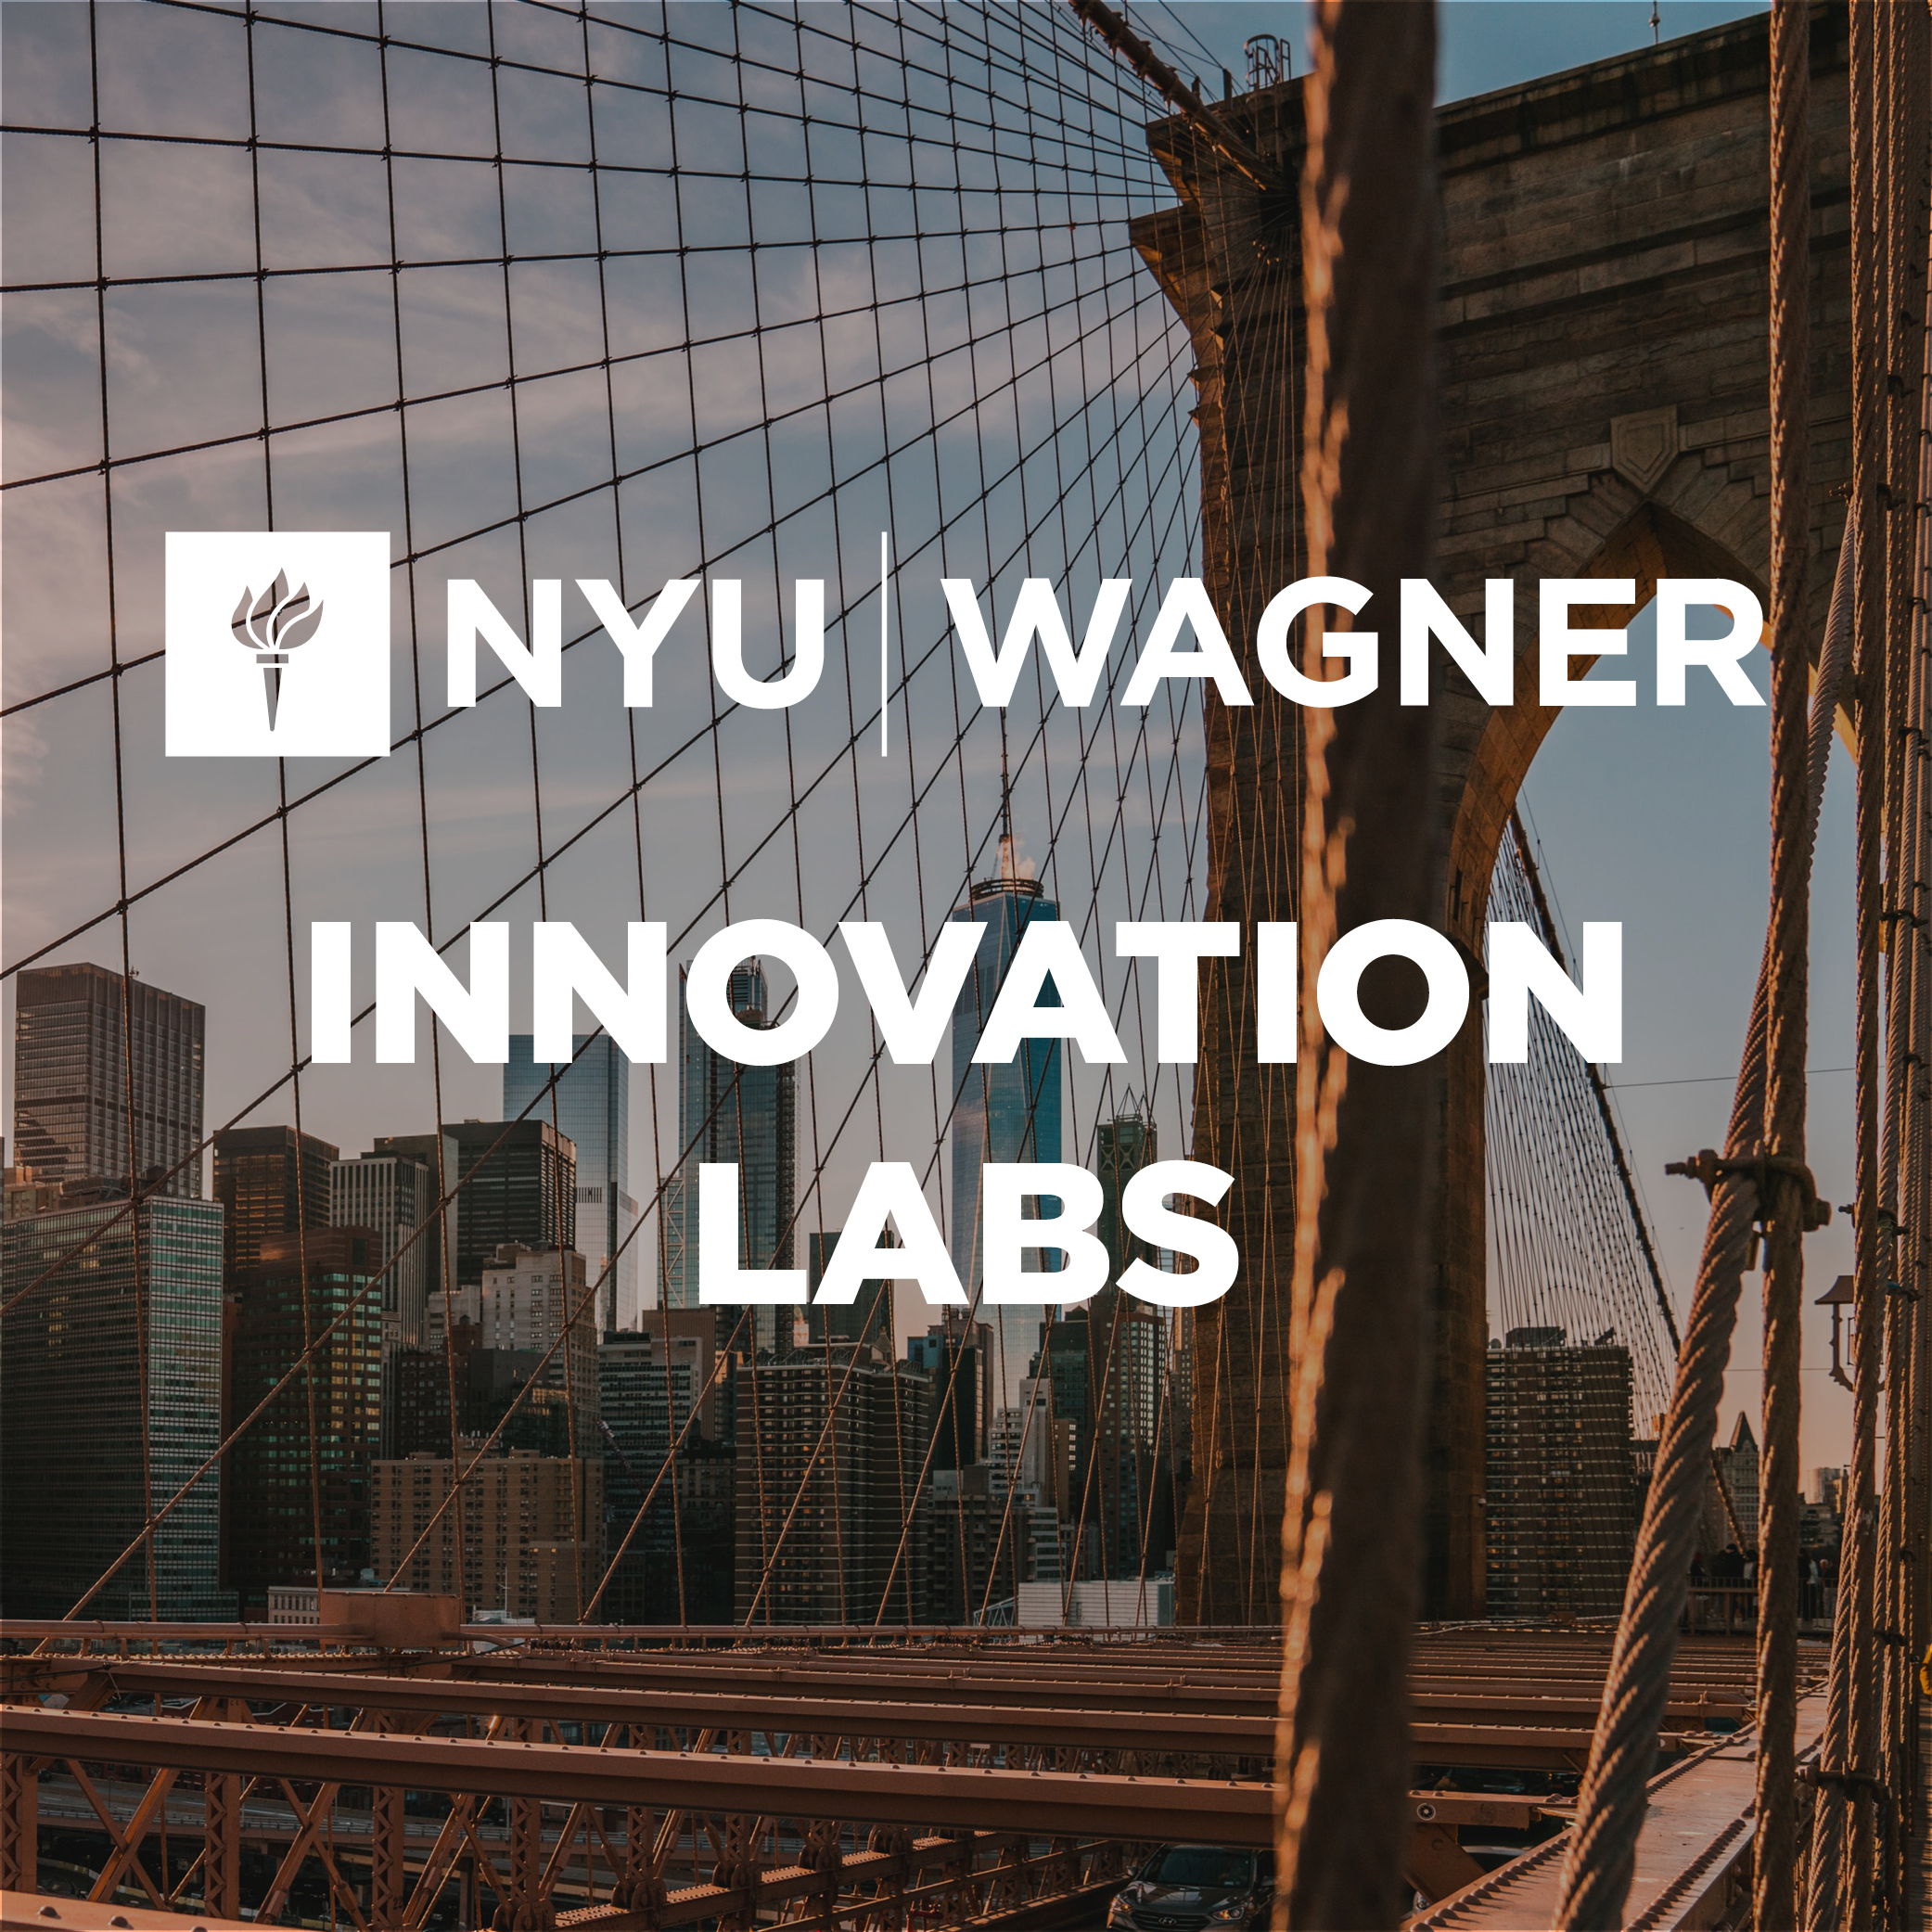 The Wagner Innovation Labs are a new series of policy experiments that marry theory and practice to promote informed, evidence-based decision-making in a complex world. Each project reflects NYU Wagner's broad commitment to bringing scholars, thinkers, and practitioners together, both figuratively and literally, to improve the way policy is made.